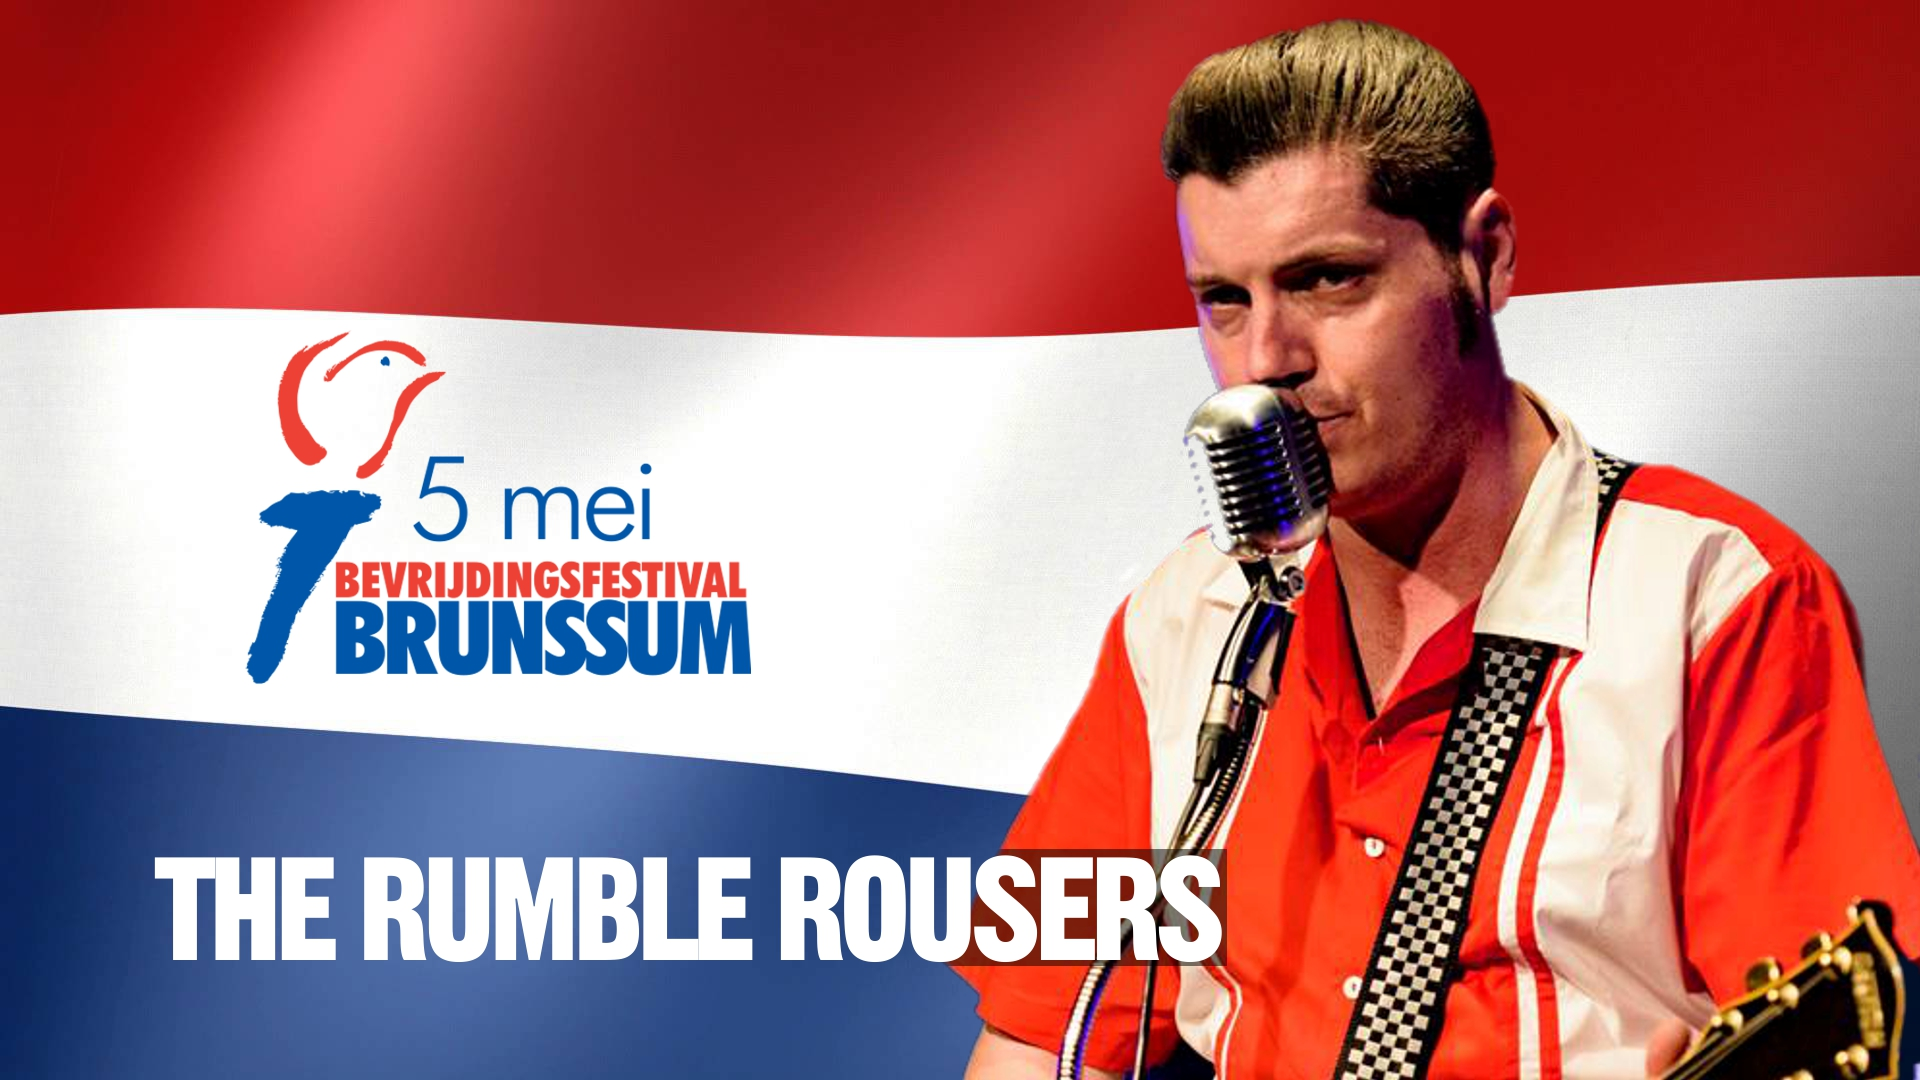 The Rumble Rousers